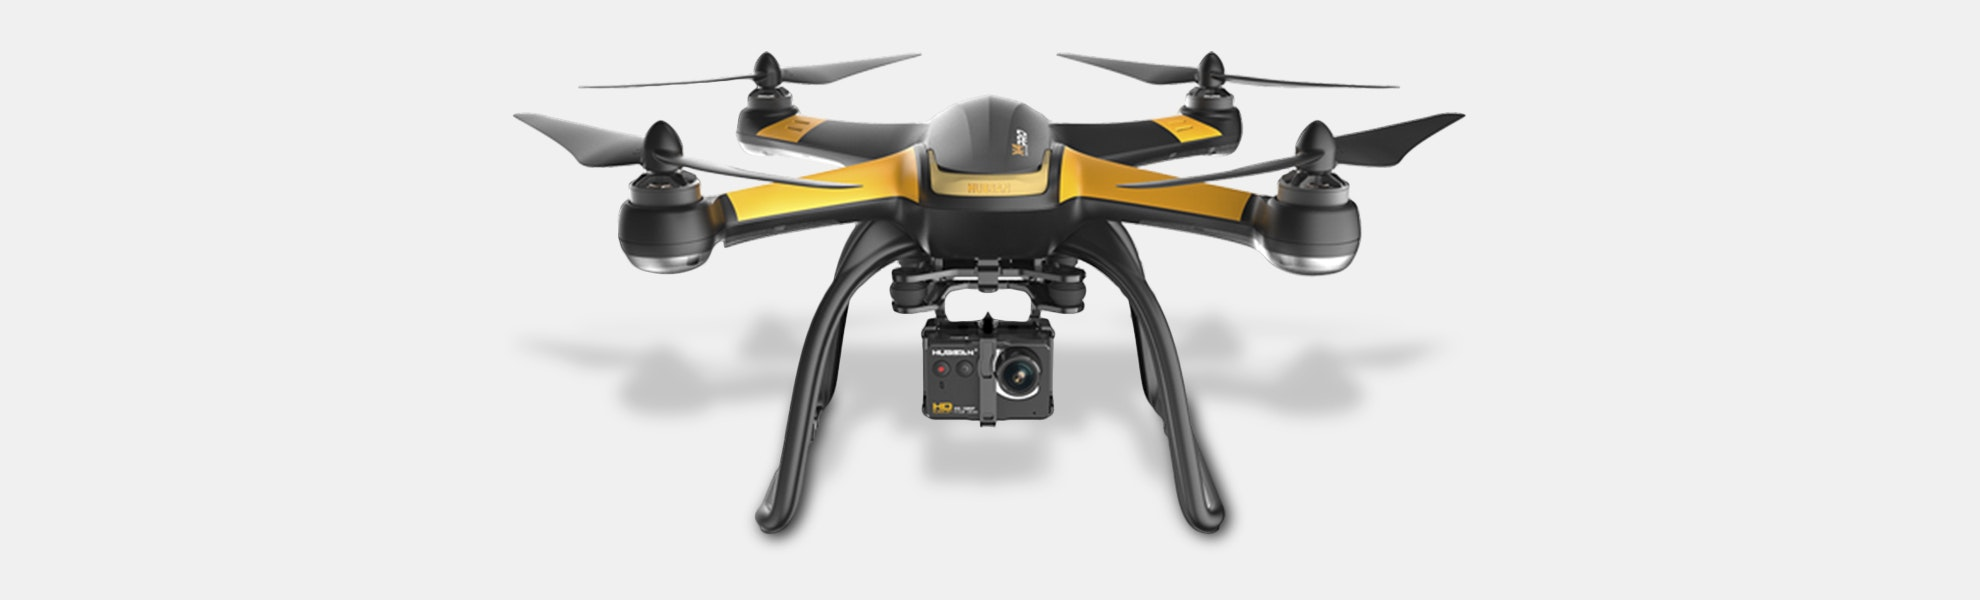 Hubsan H109S X4 Pro Standard Edition Drone